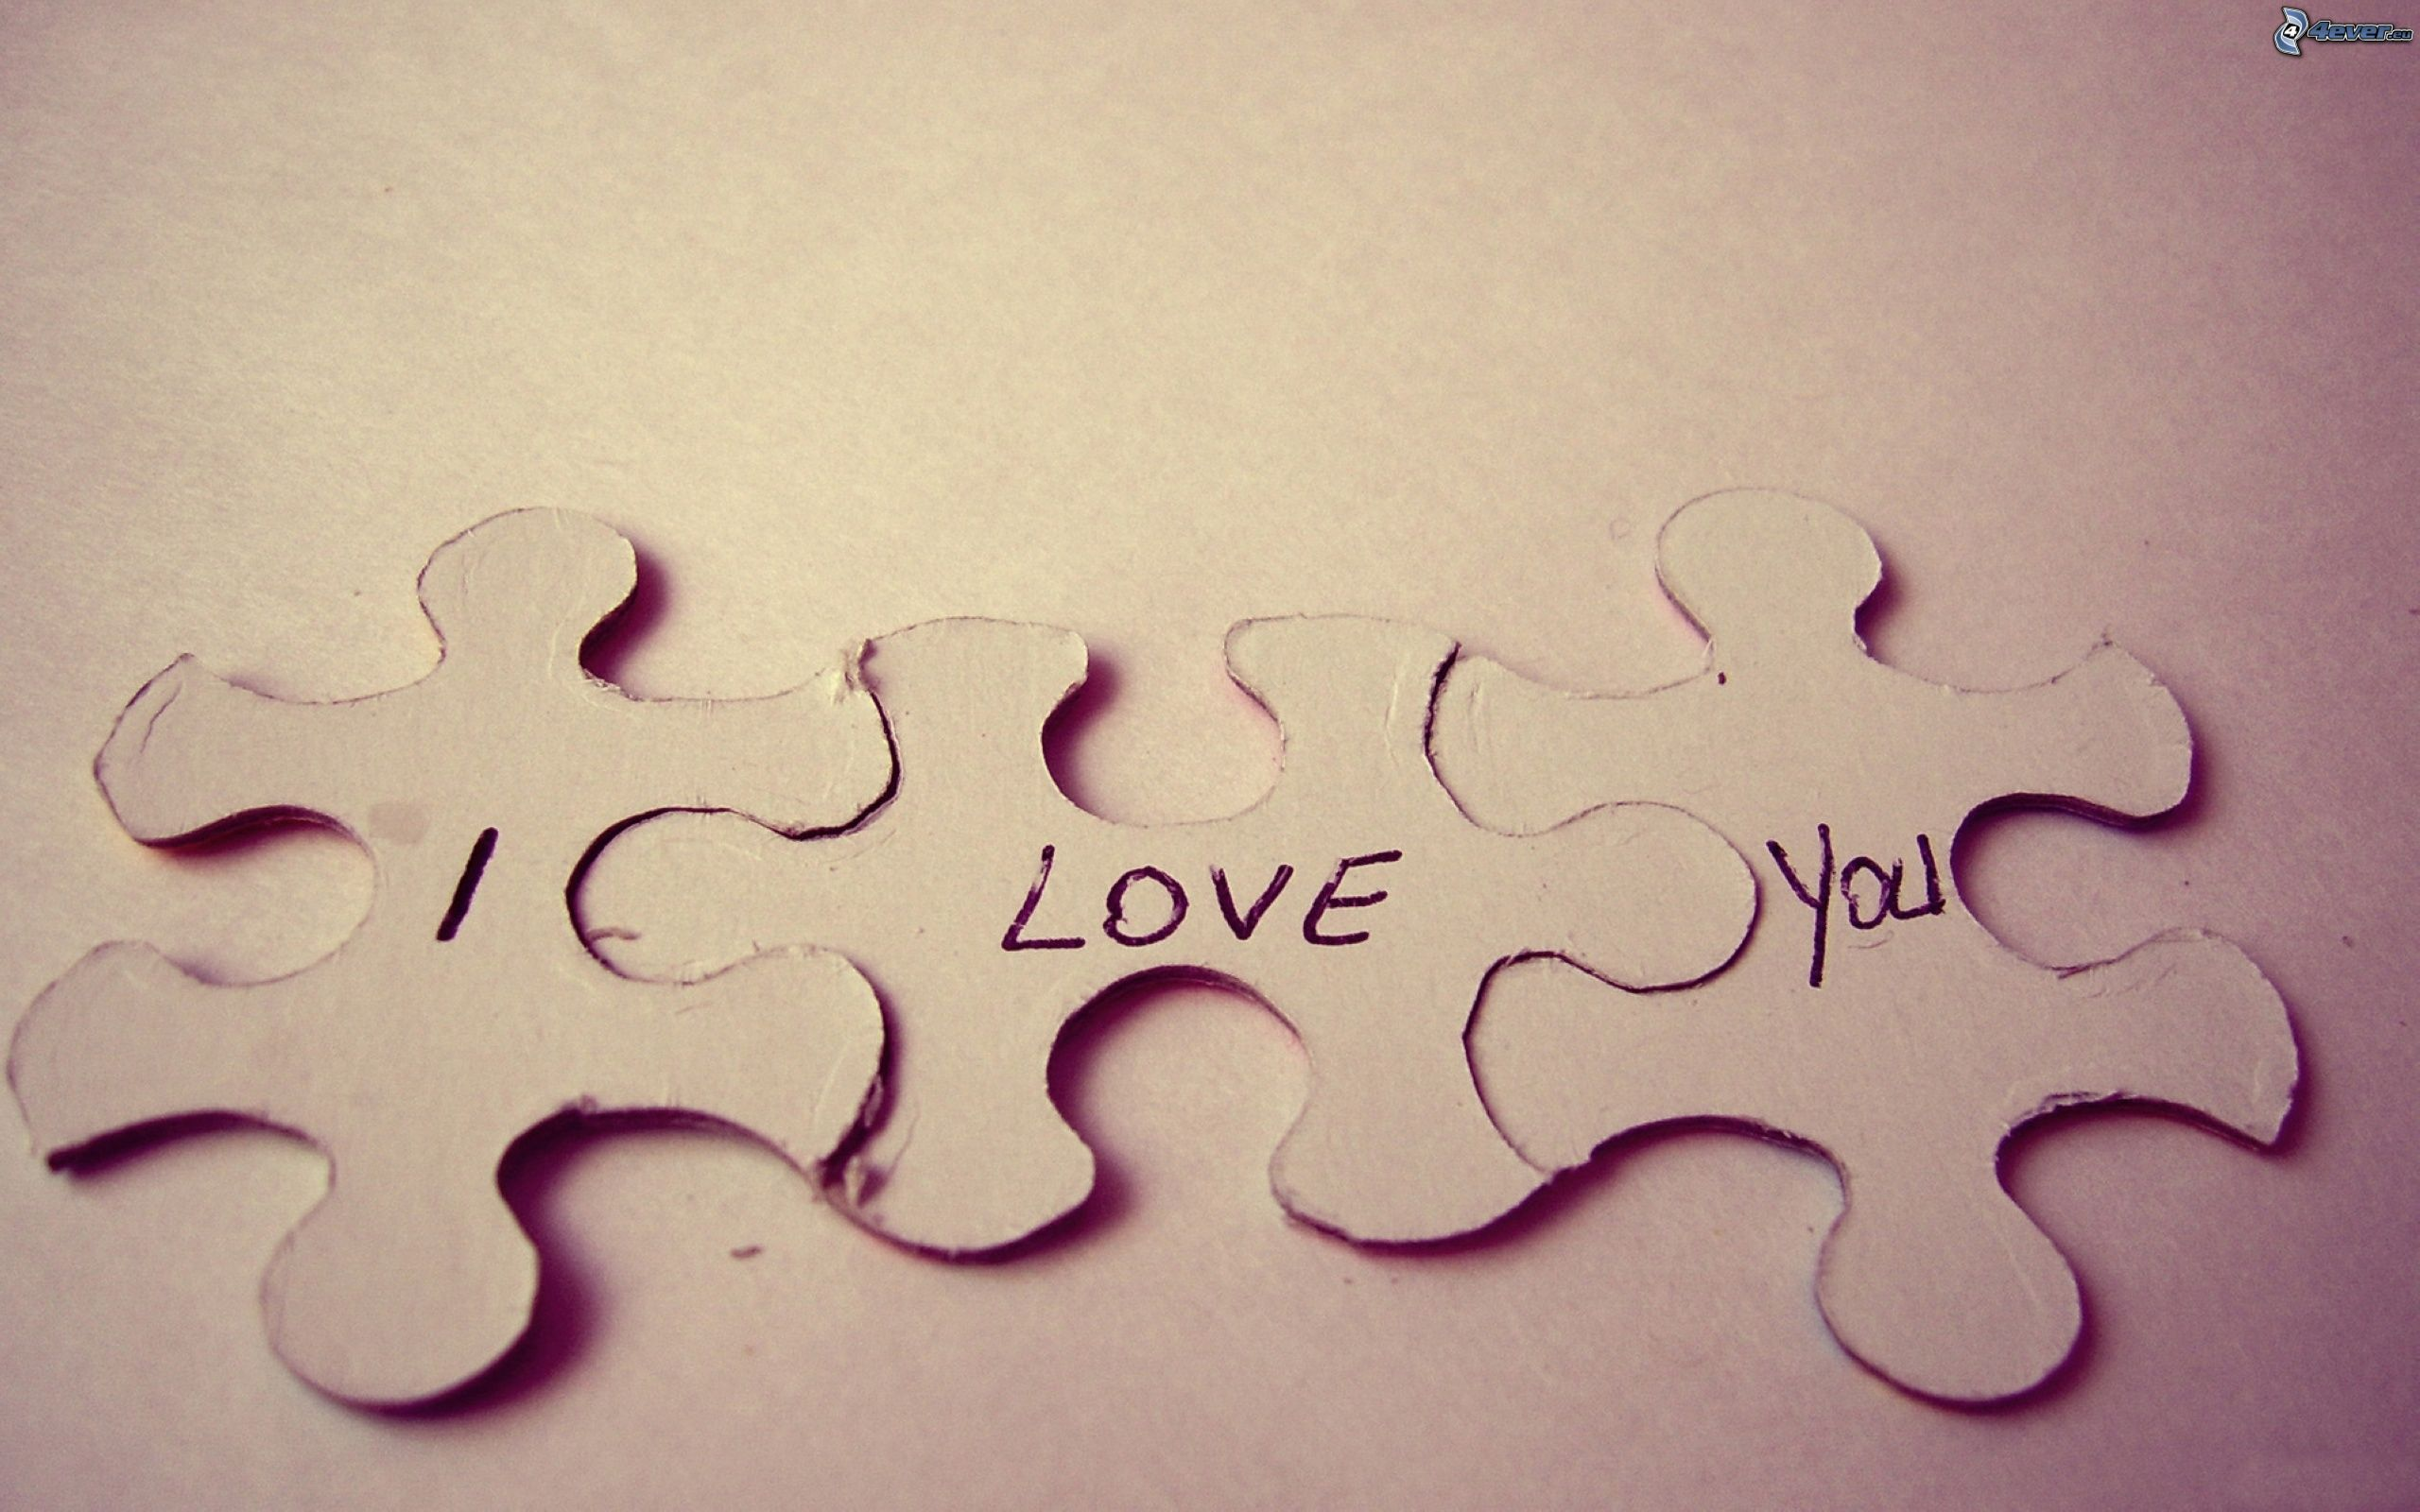 I Love You Wallpapers Hd